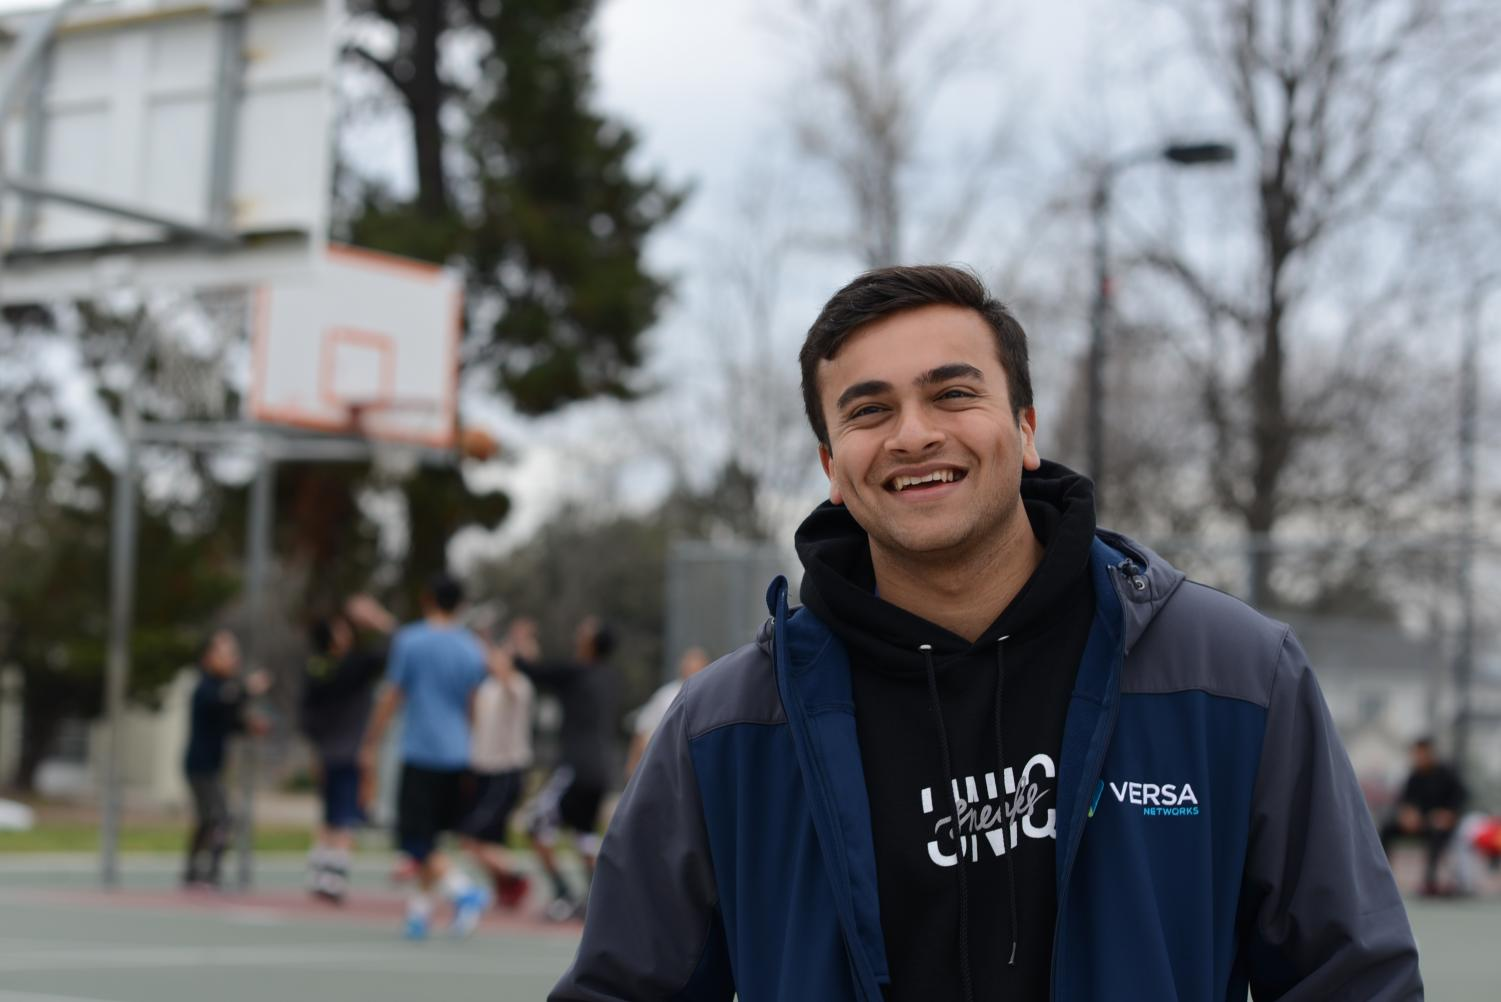 """This is like a melting pot of Cupertino, Lynbrook, Saratoga, some people from De Anza, so you meet all kinds of people,"" Rahul Mehta (12) said. ""Half the time I'm not even playing with my friends, so I'm playing with random people. You start off in the beginning a bit wary of each other, and then by end you're playing like they're your friends. It's kind of gradual. Like after a really cool play, you'll high five each other, and that's how it all begins."""